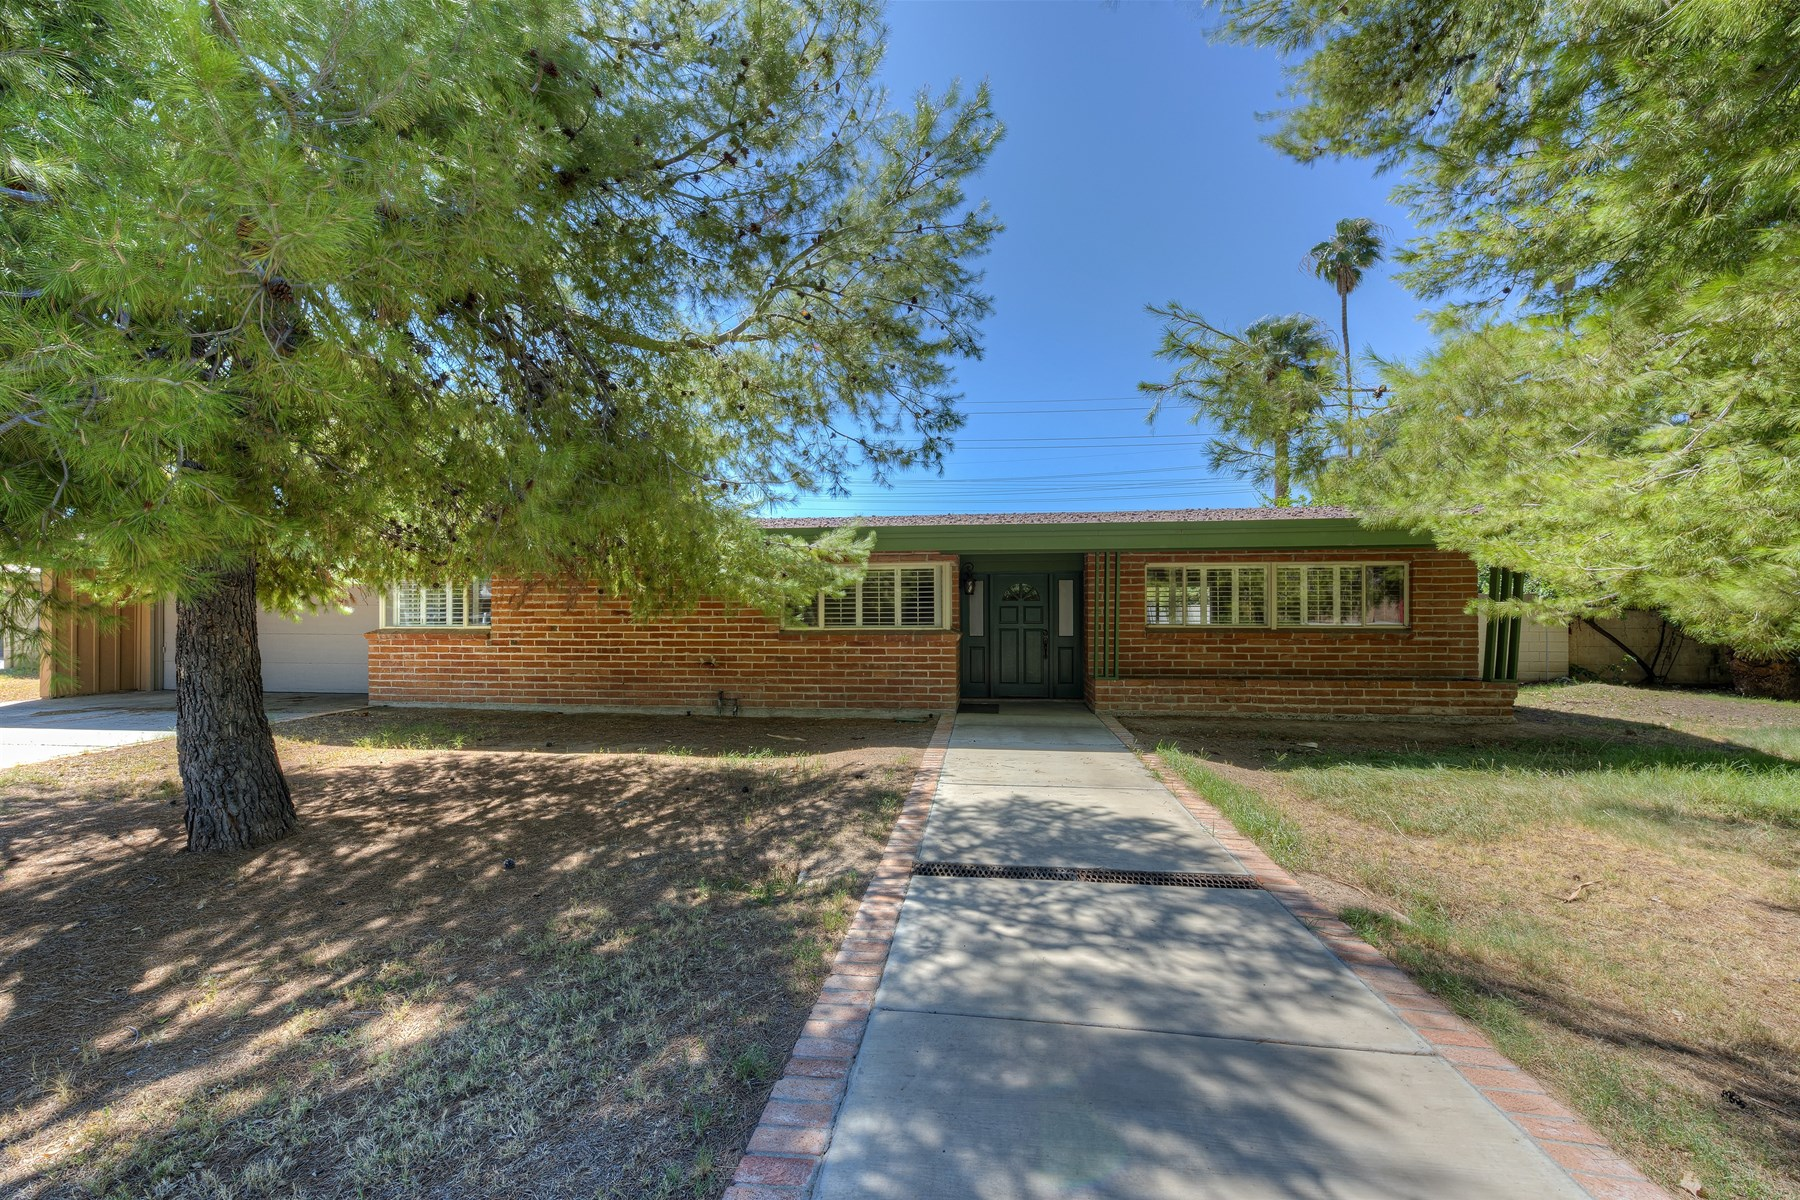 Property For Sale at Great location in Arcadia with mature trees and oversized lot